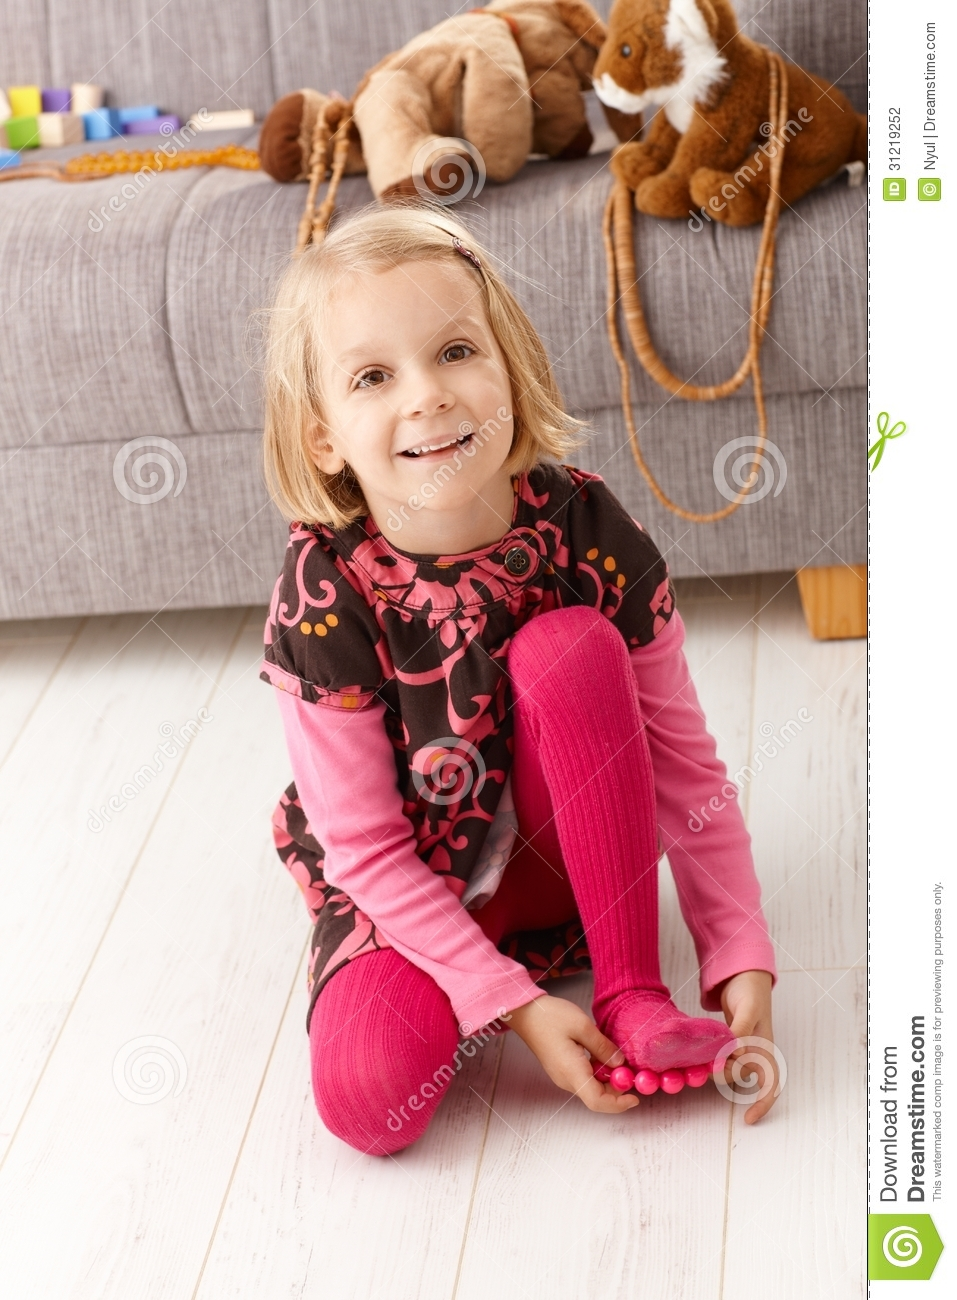 Cute Little Girl Playing At Home On Floor Smiling Stock